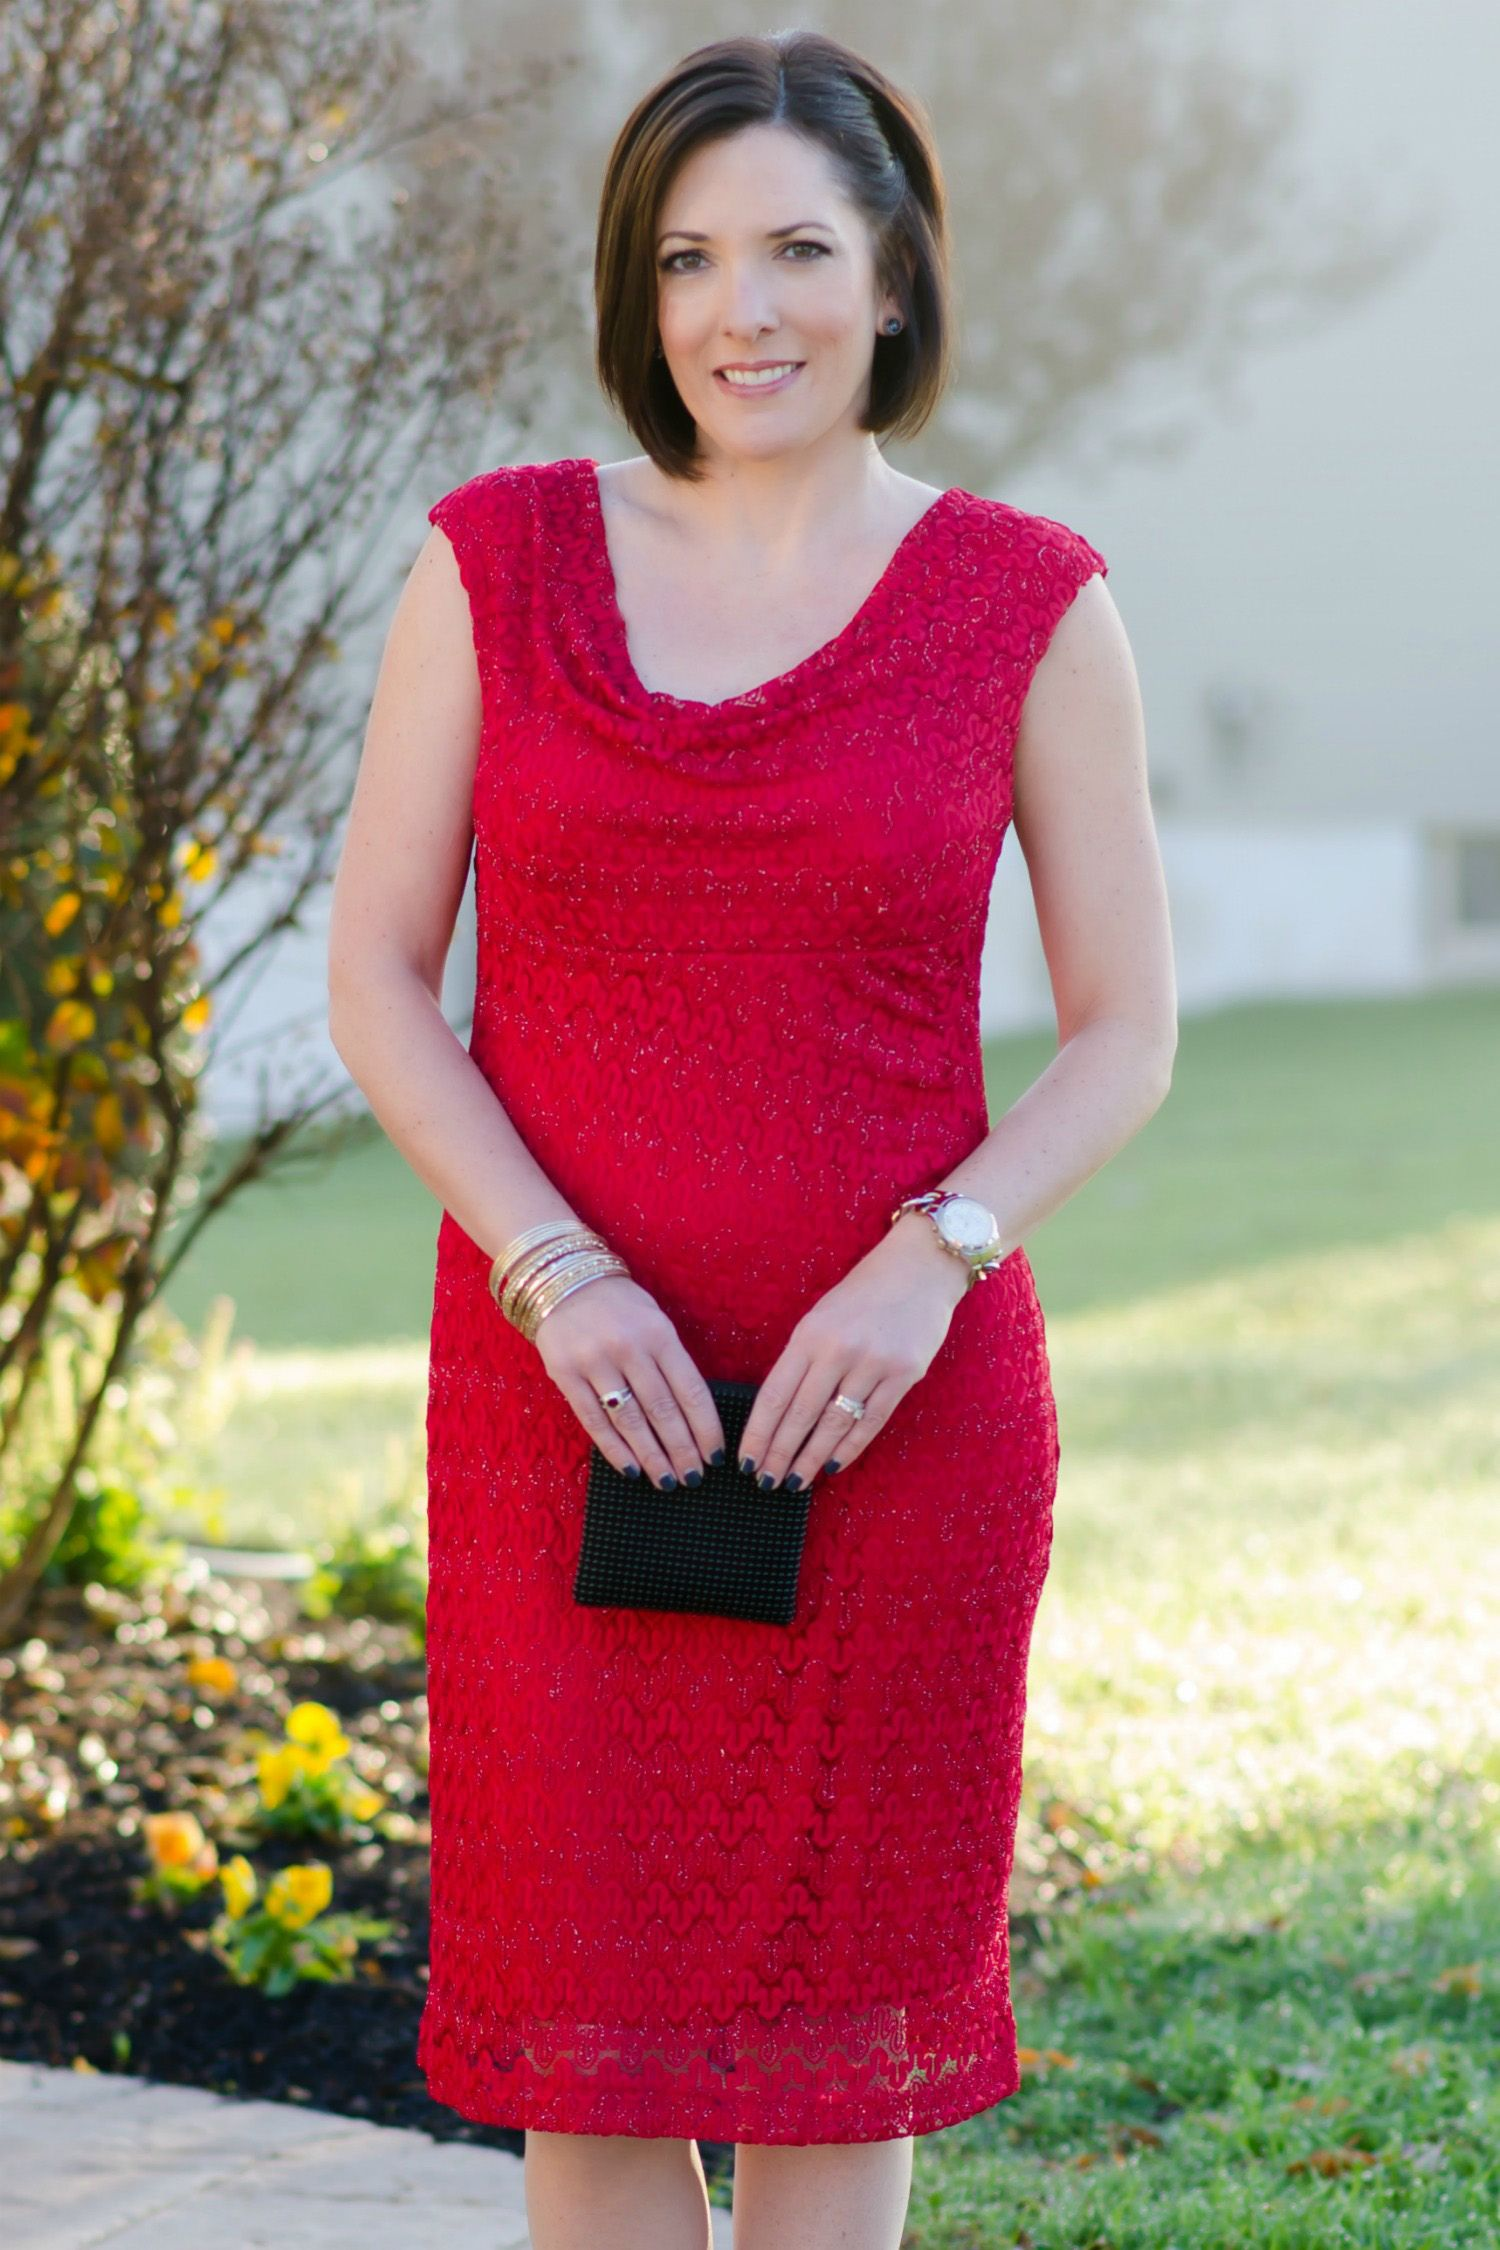 Dresses from ross - Holiday Party Style In Partnership With Ross Dress For Less Rossbargainhunter